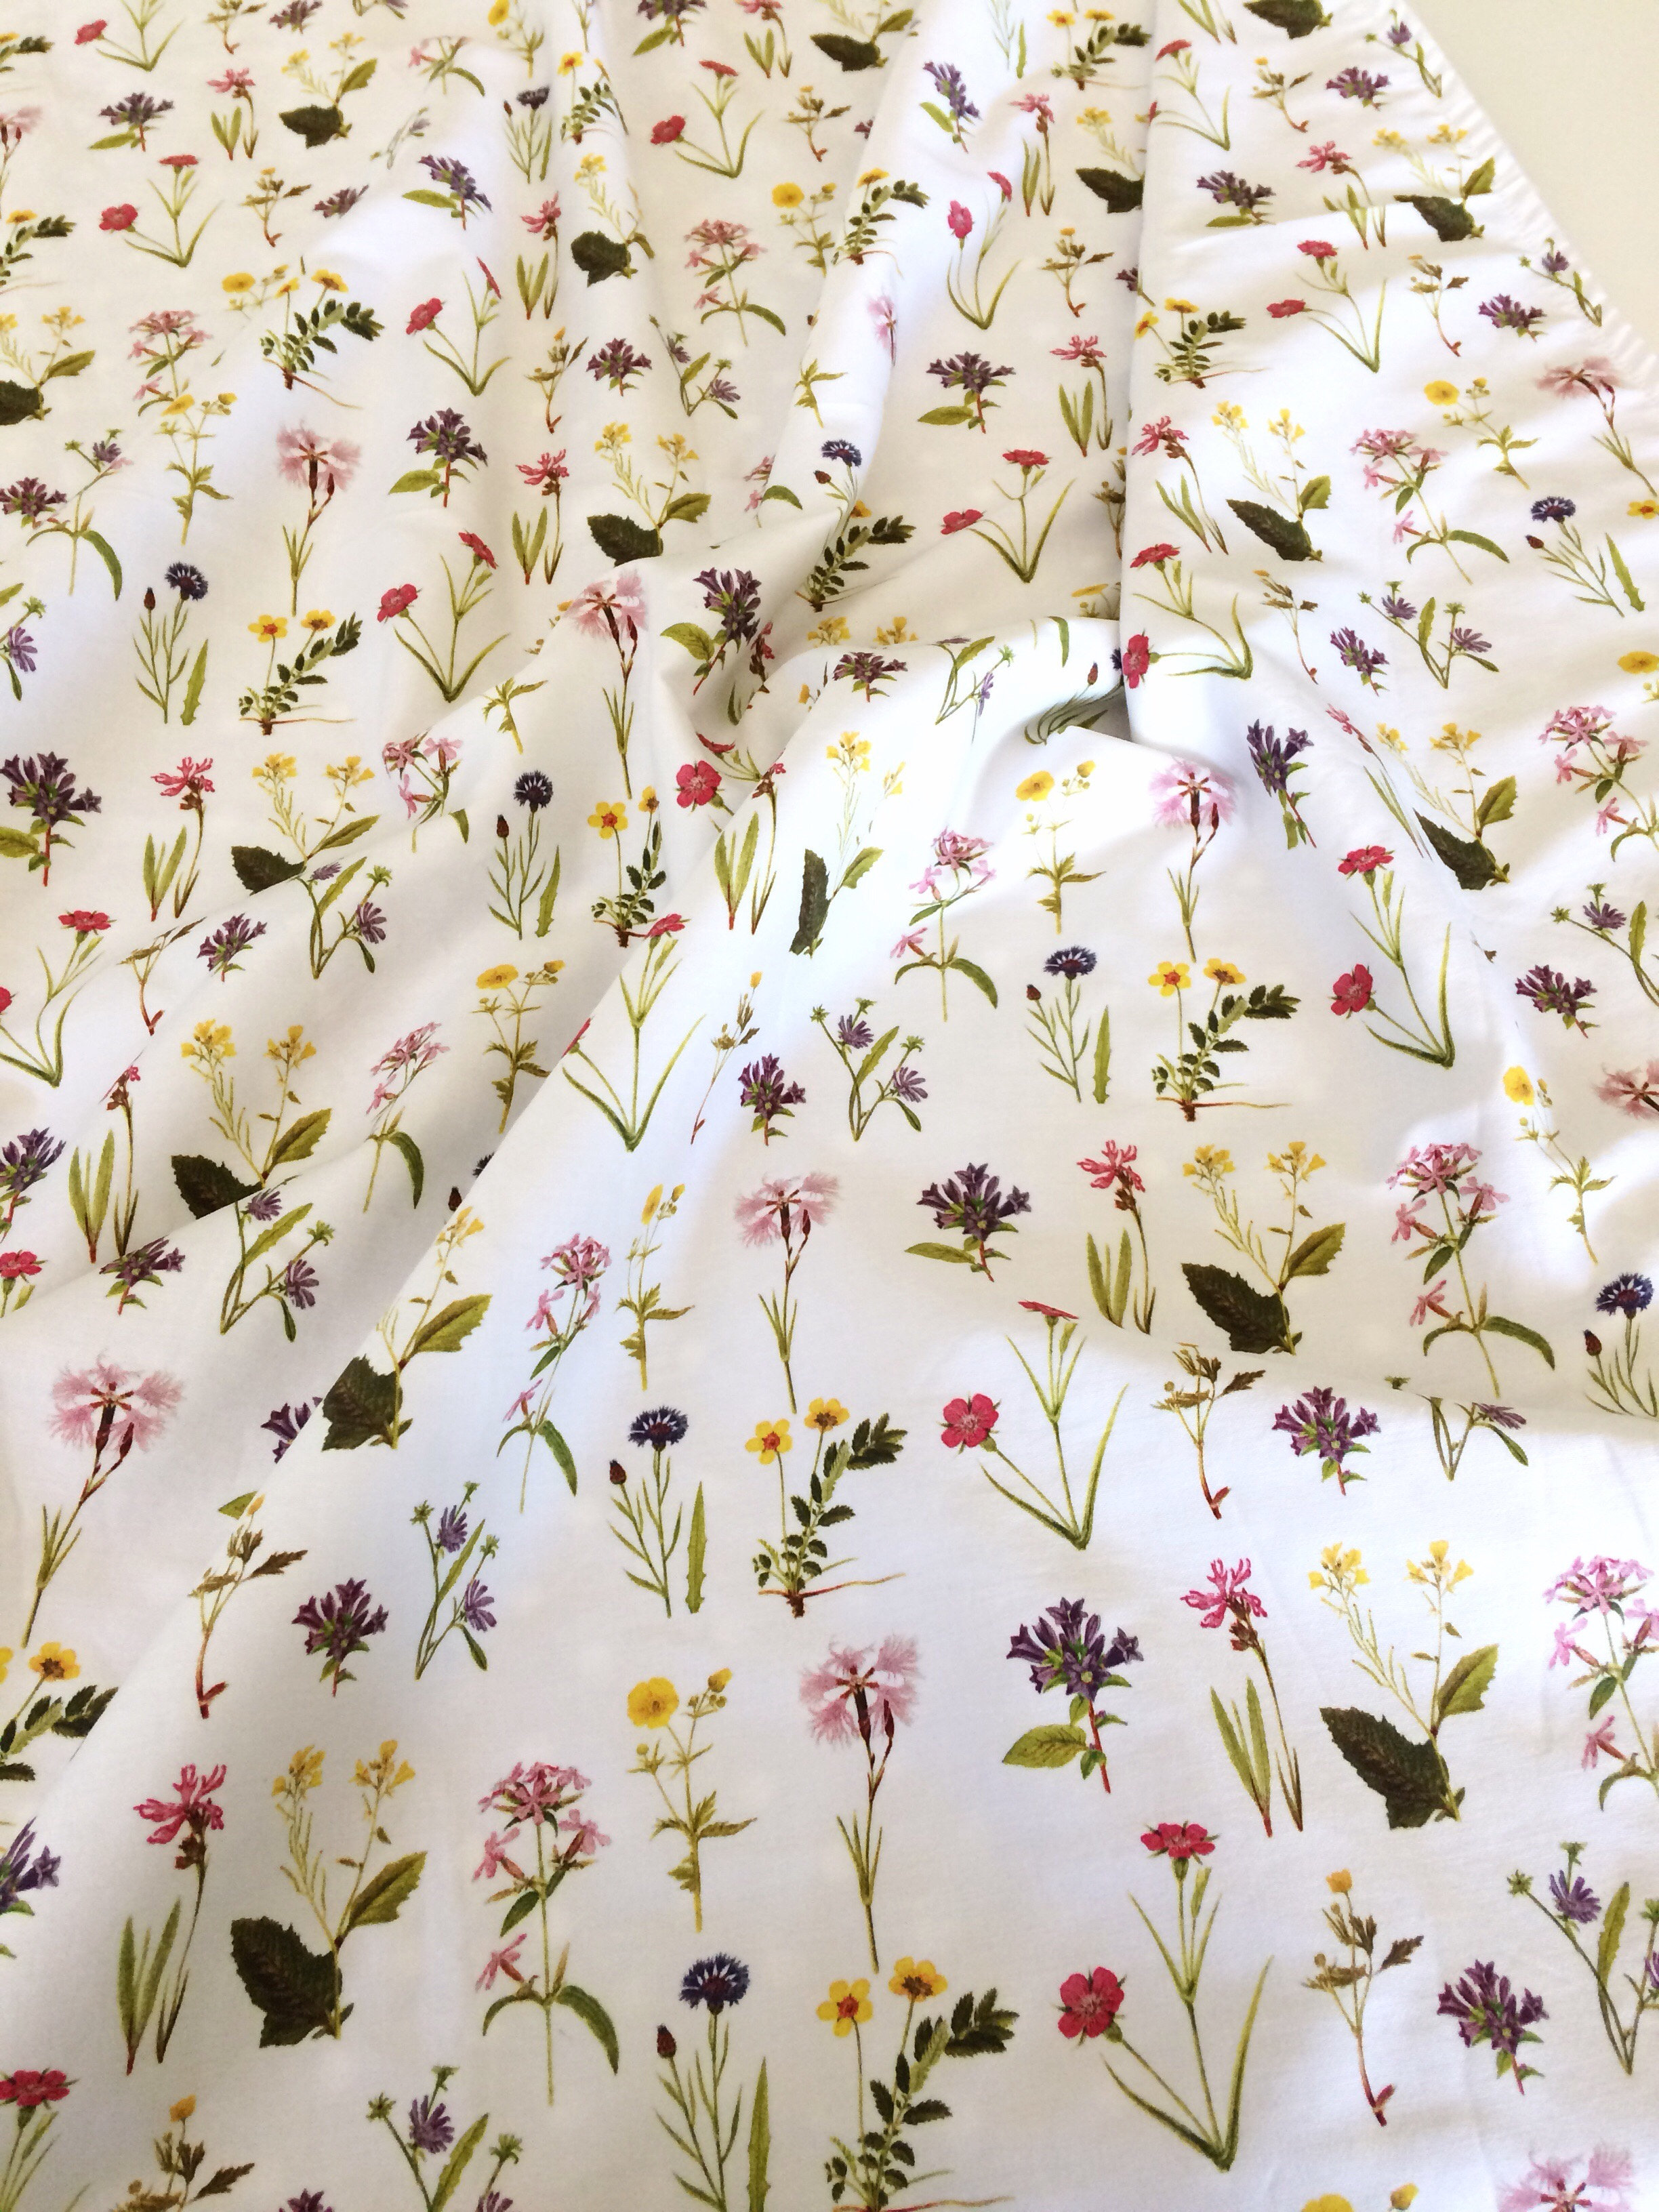 Organic Cotton Sateen, Minky Baby Blanket - Wildflowers | Ready to Ship